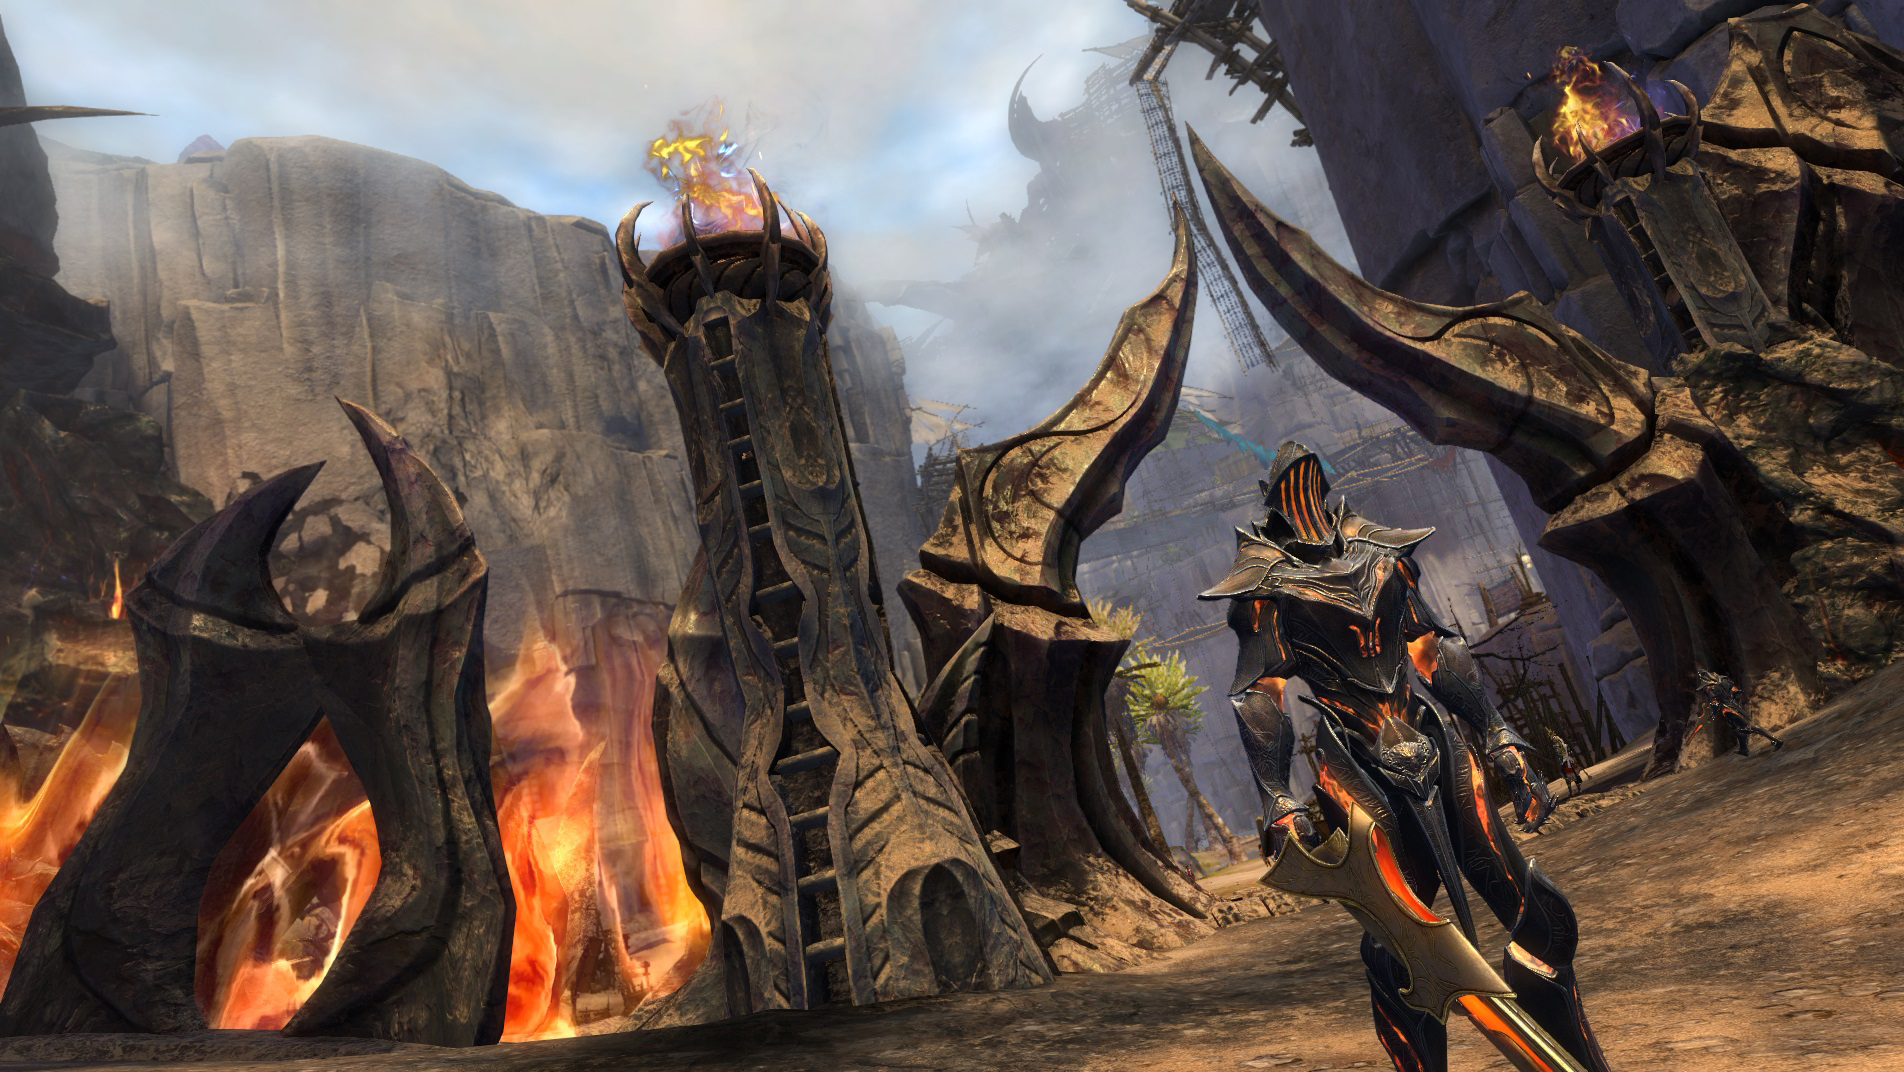 guild wars 2 path of fire download torrent